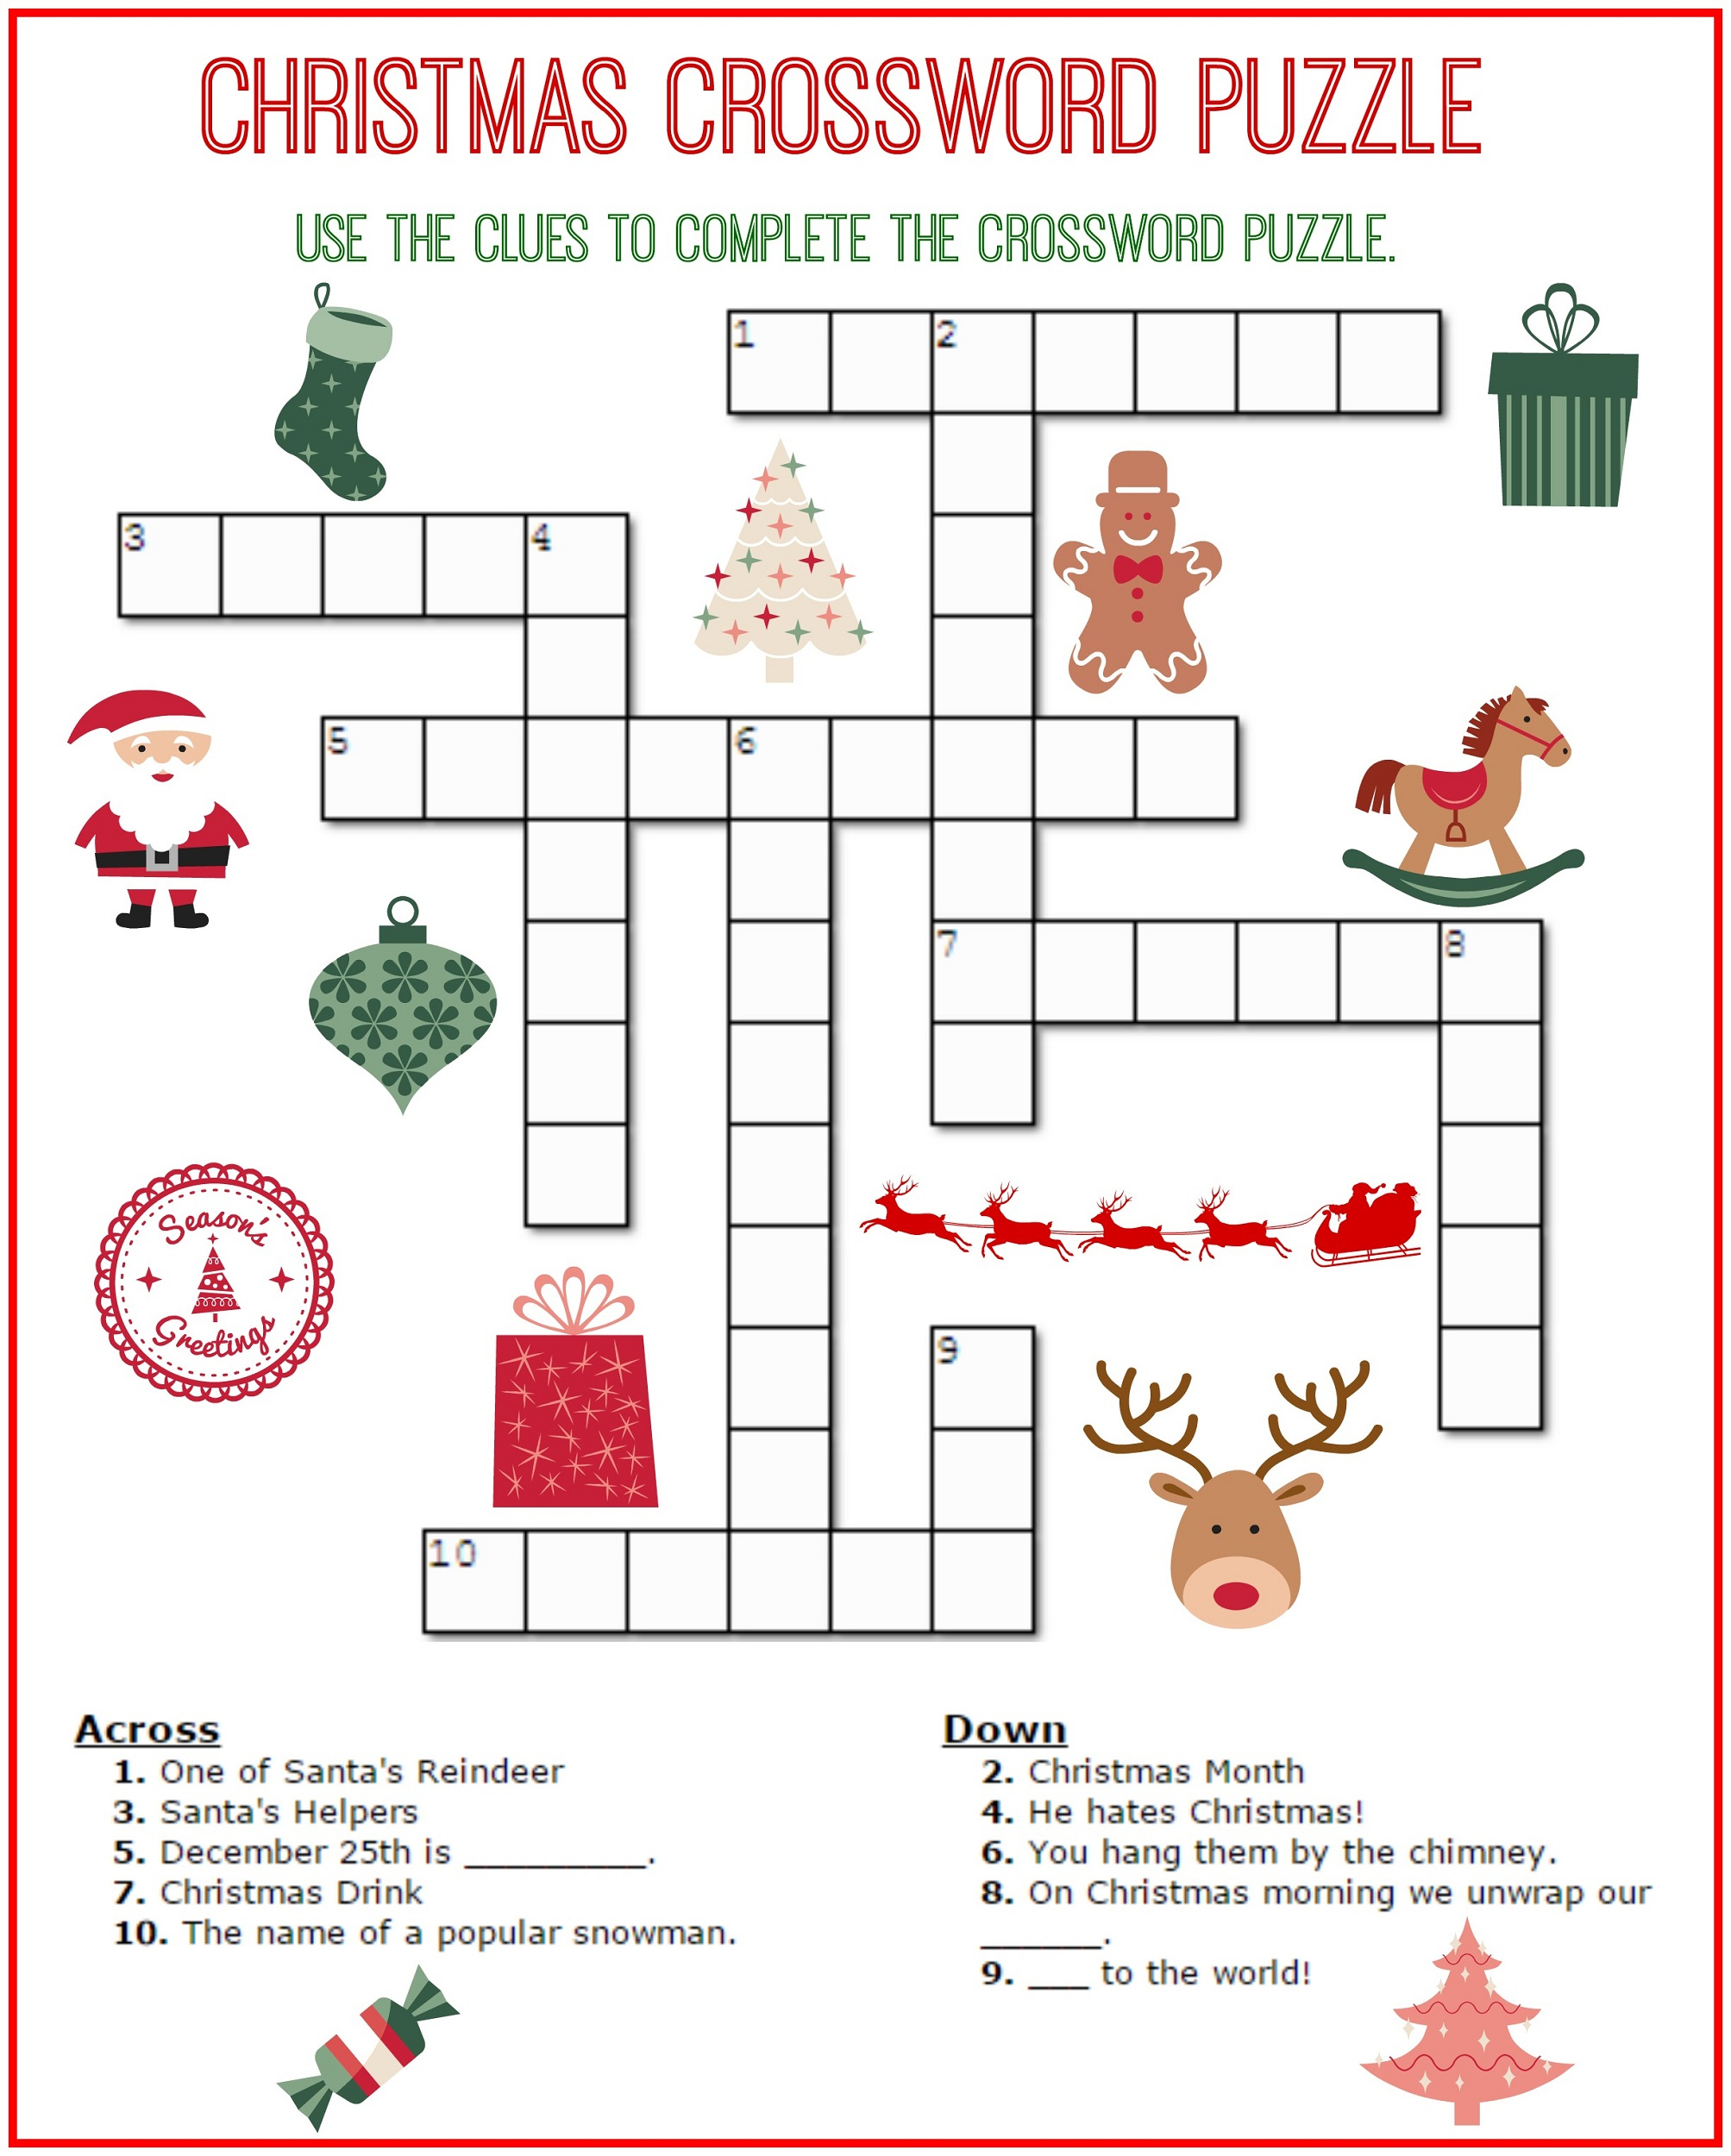 Crossword Puzzle Kids Printable 2017 | Kiddo Shelter - Free Easy Printable Crossword Puzzles For Kids